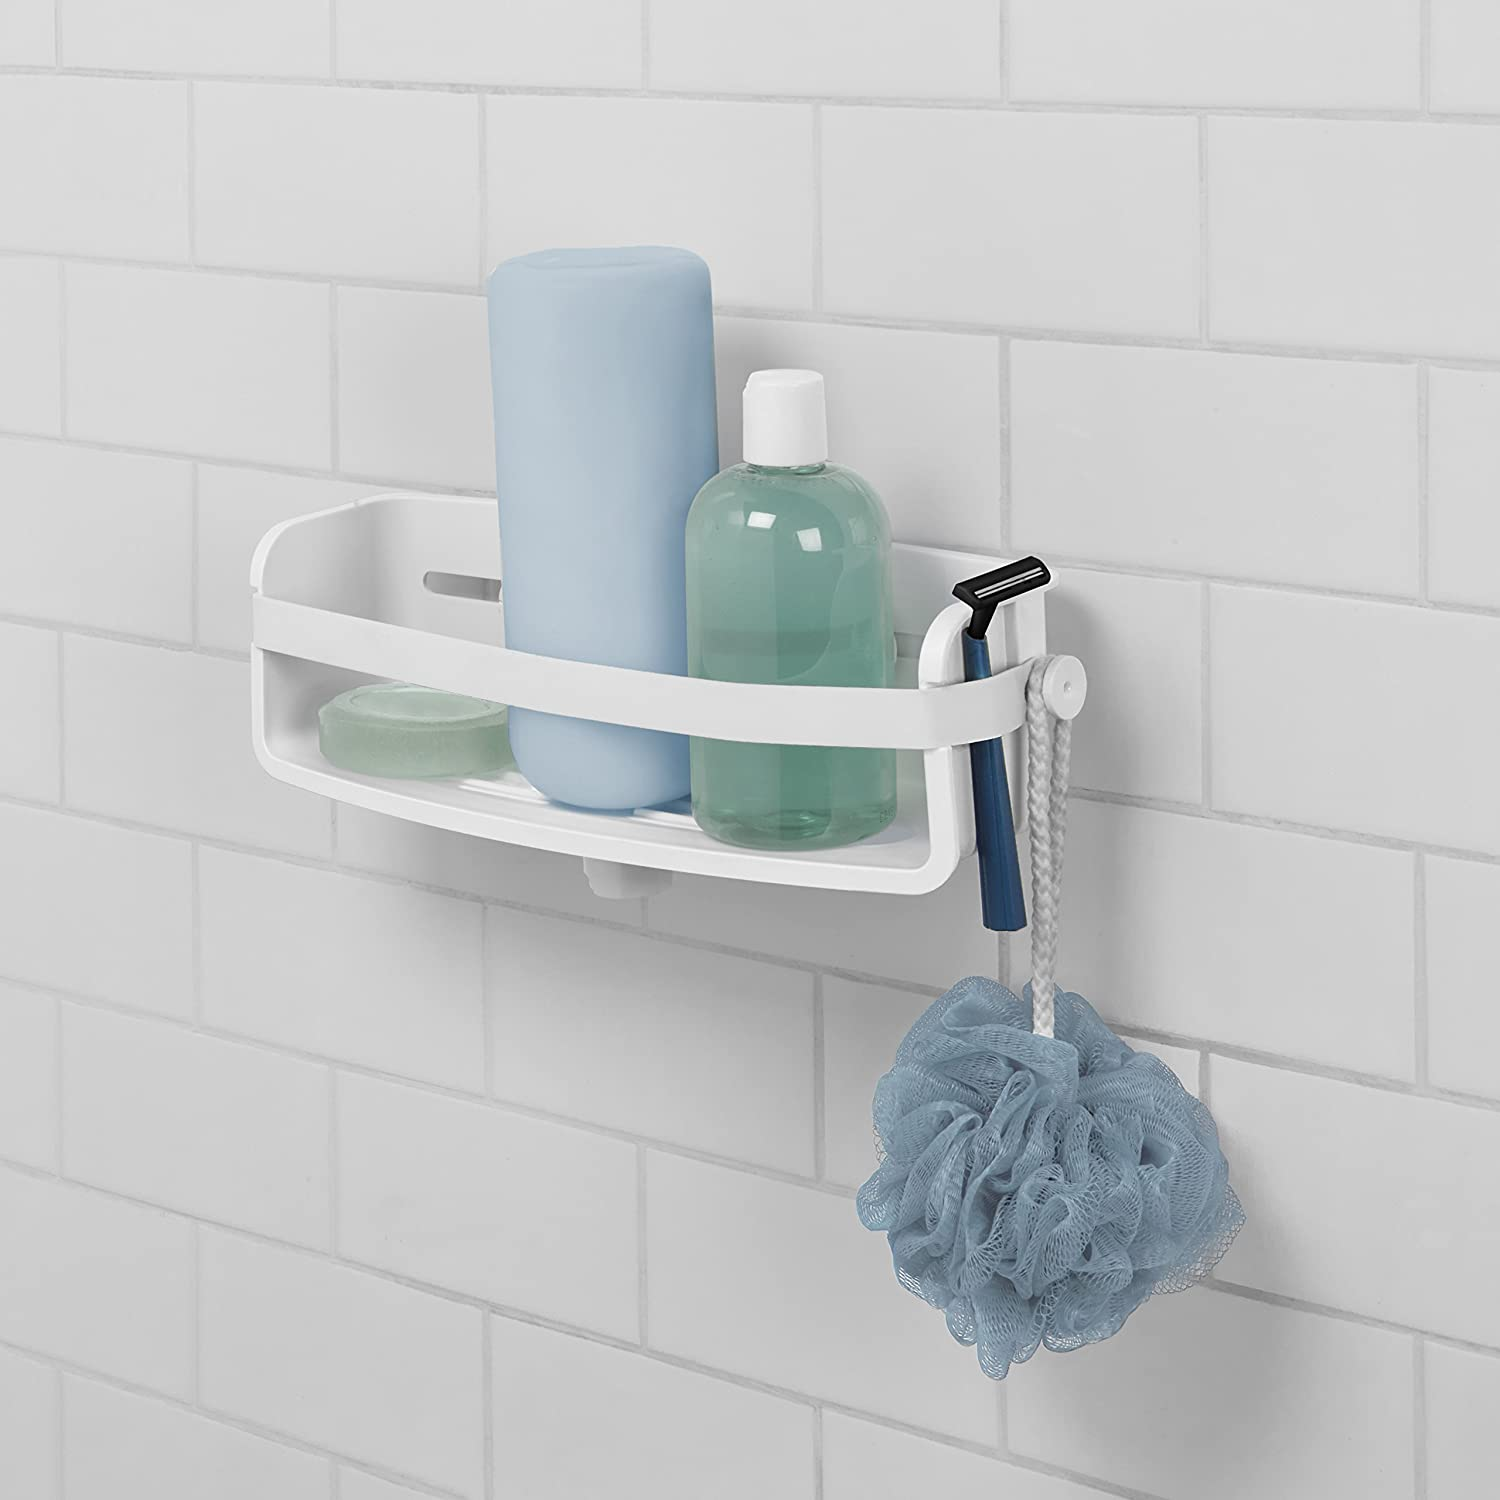 Amazon.com: Umbra Flex Shower Caddy, Suction Hook, Soap Caddy with ...